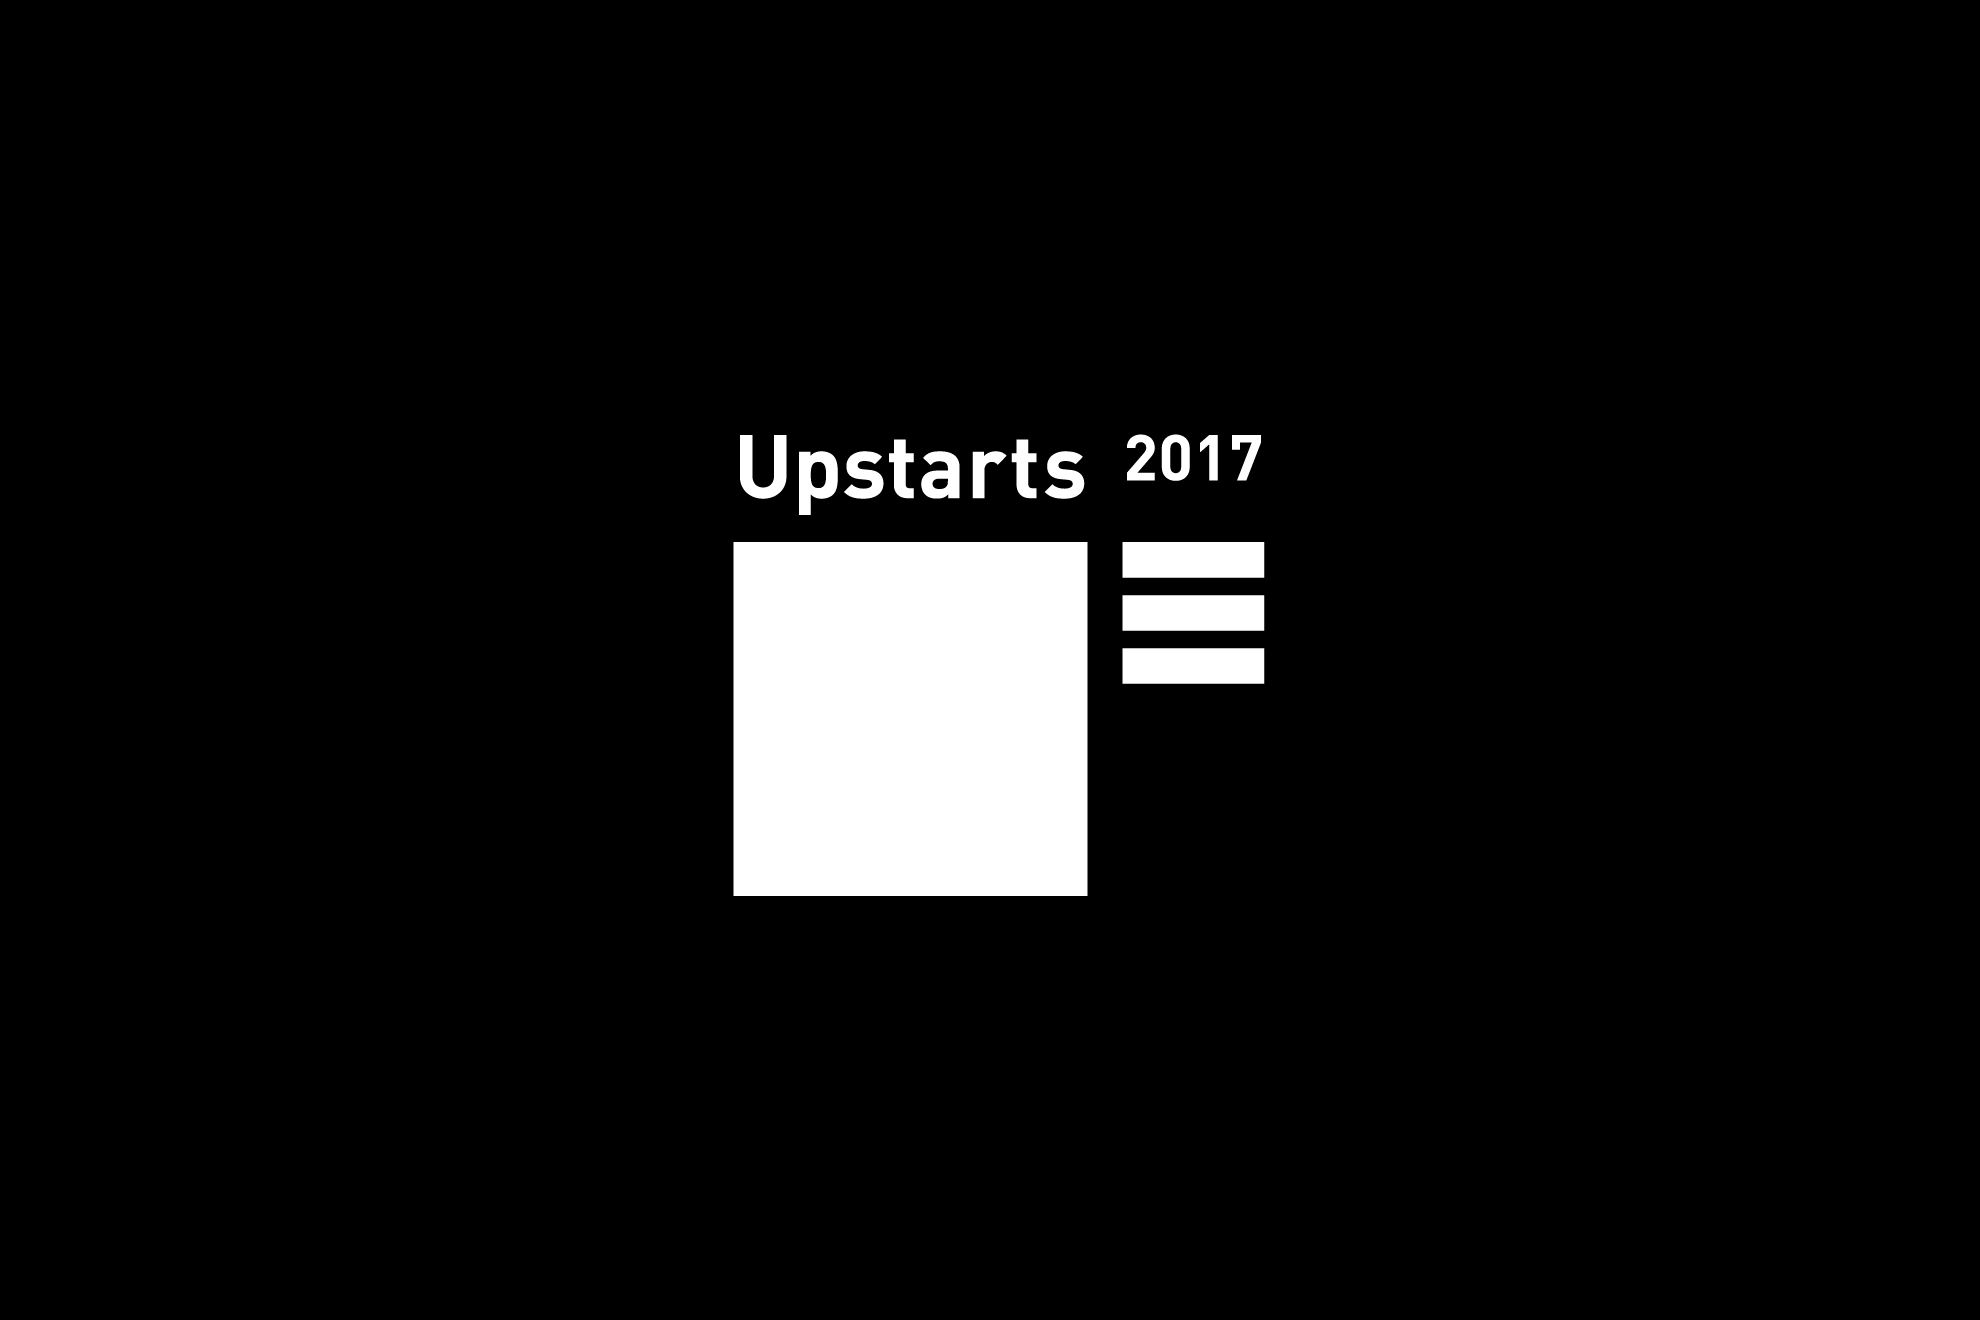 Cover image: Upstarts 2017